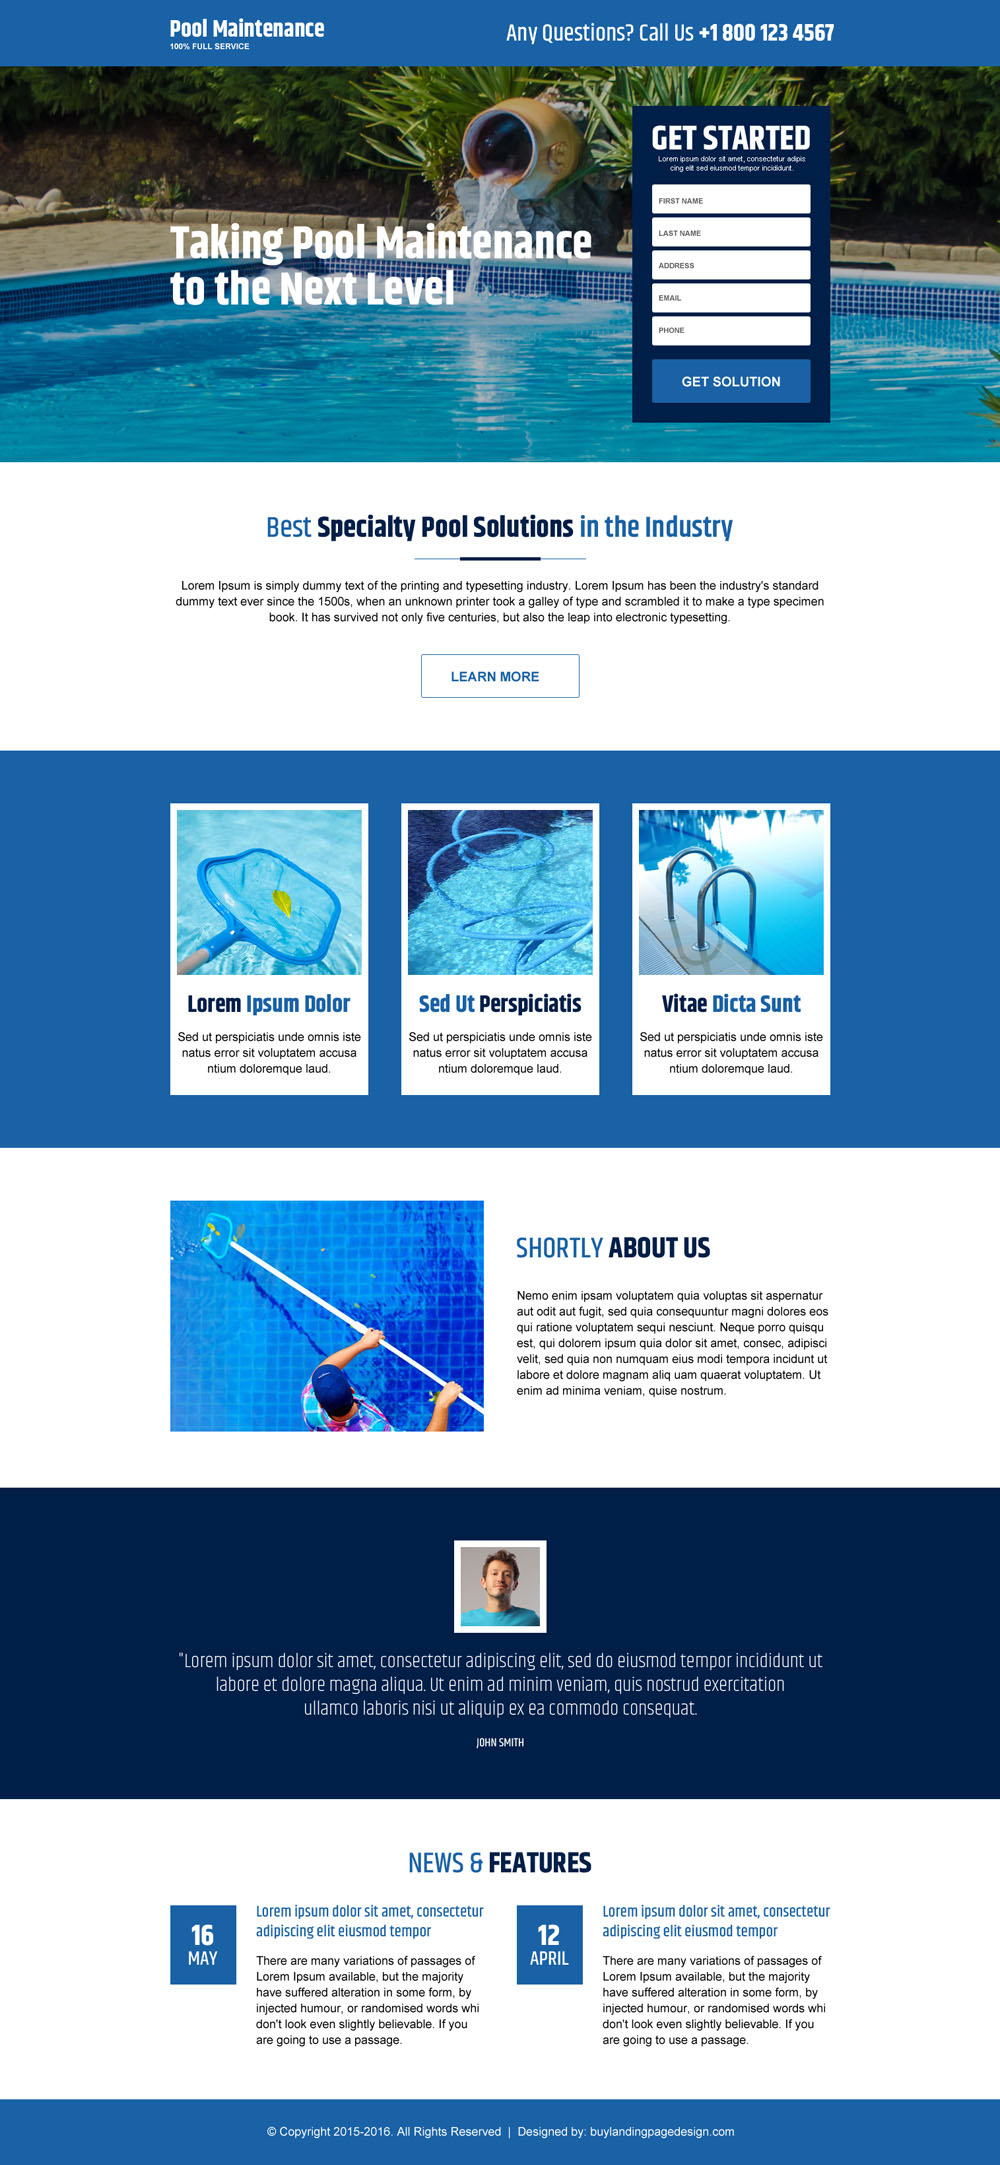 pool-cleaning-and-maintenance-service-lead-capture-converting-landing-page-design-001